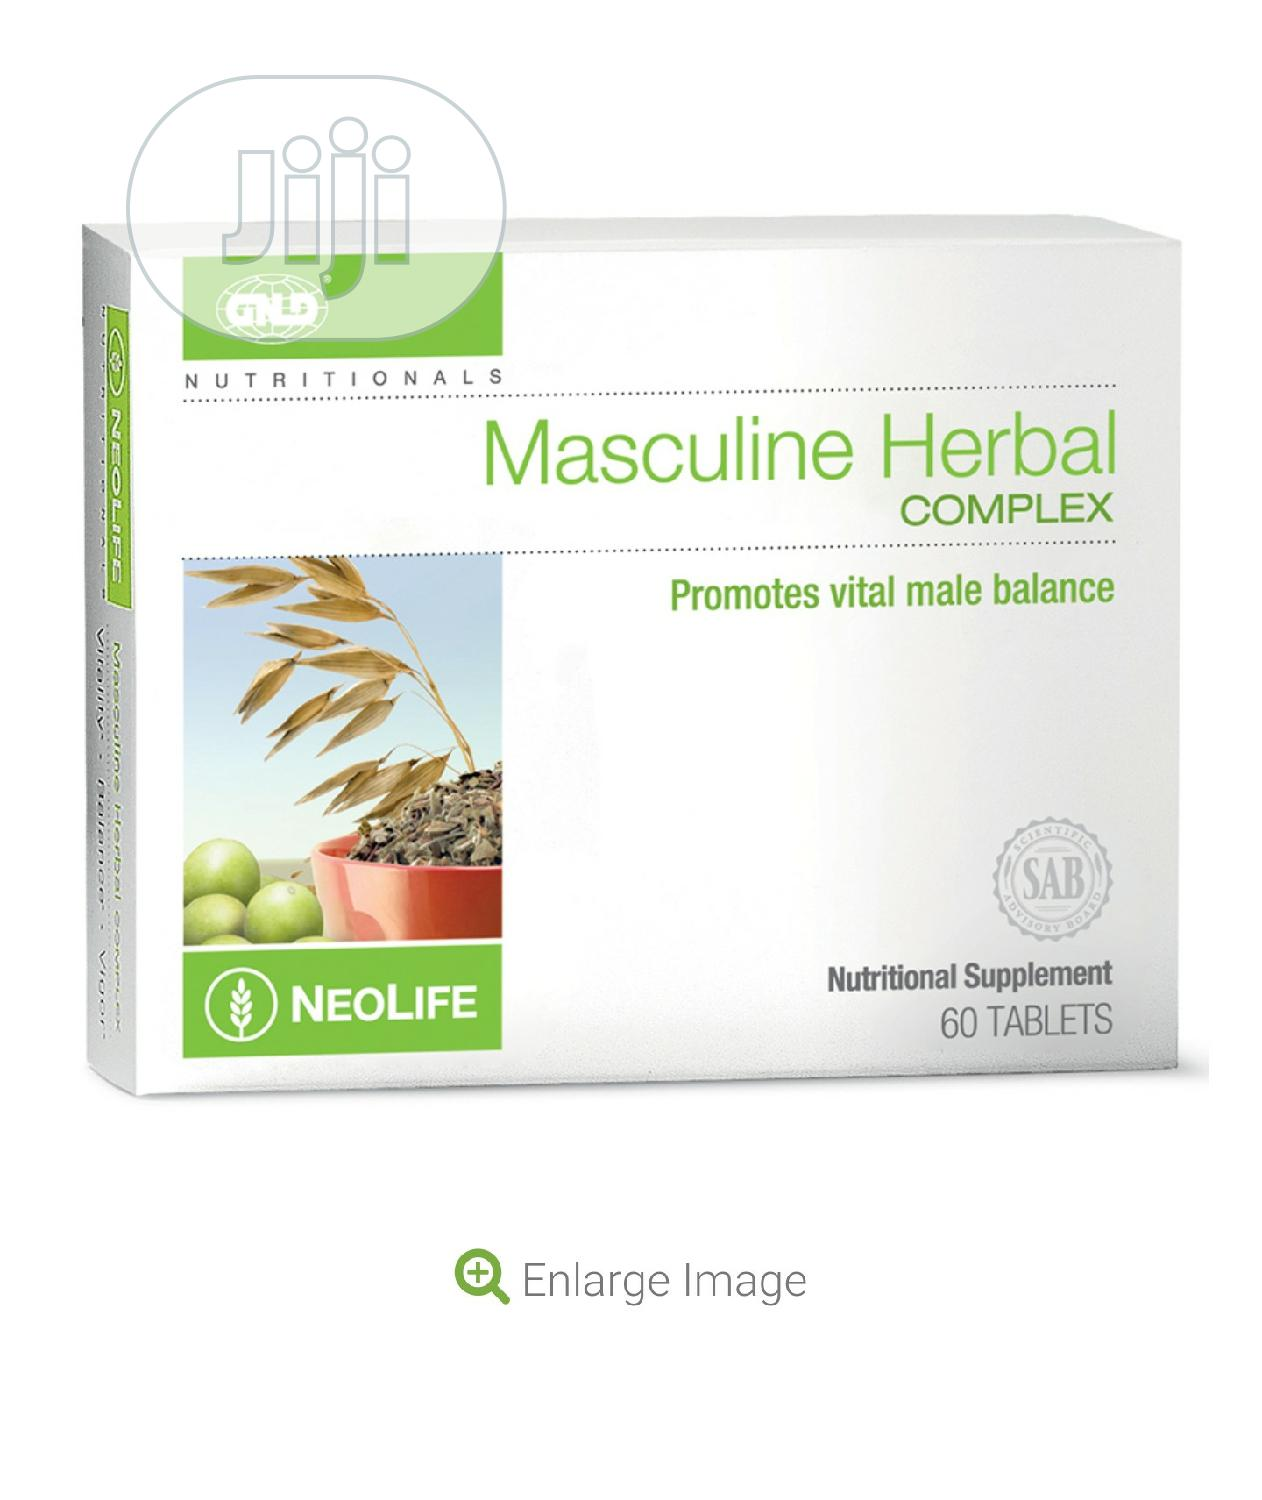 Archive: Masculine Herbal Complex for Physical and Musculine Vitality